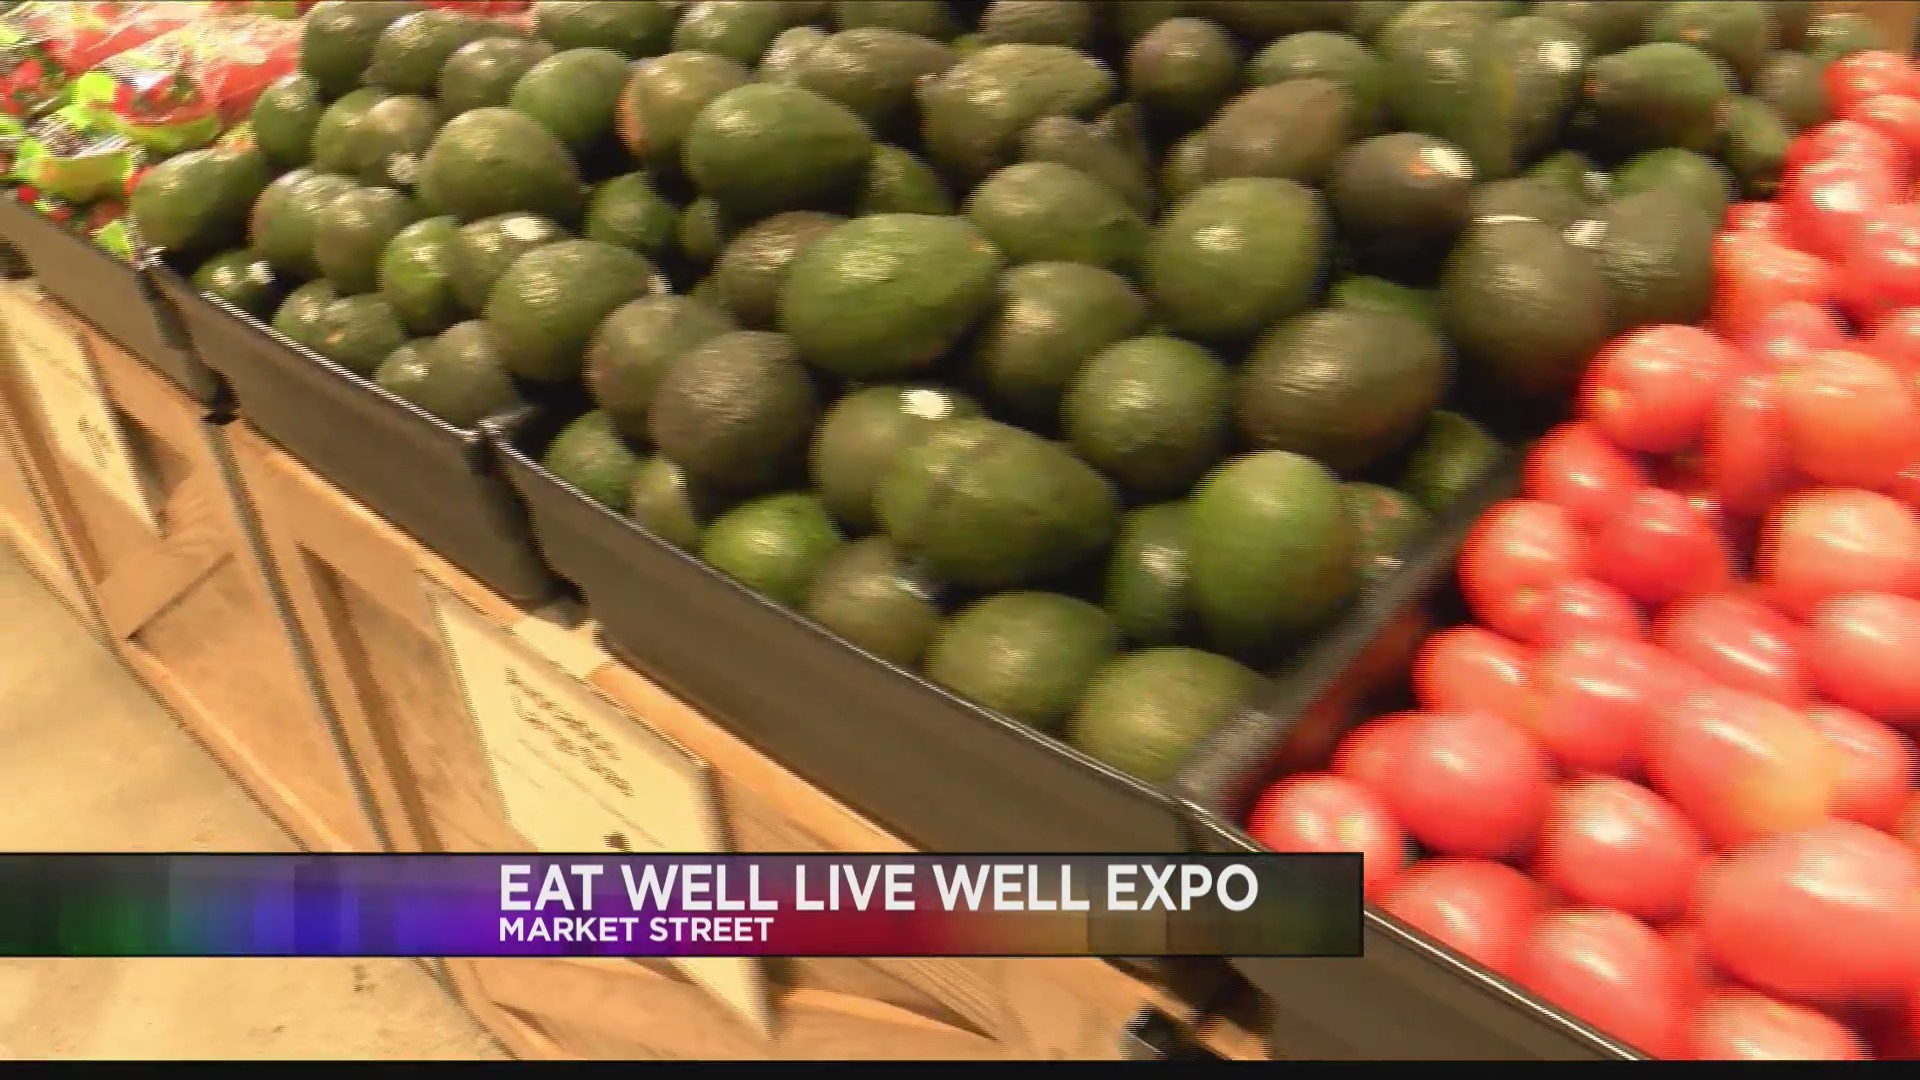 Eat Well Live Well Expo Promotes Healthy Eating